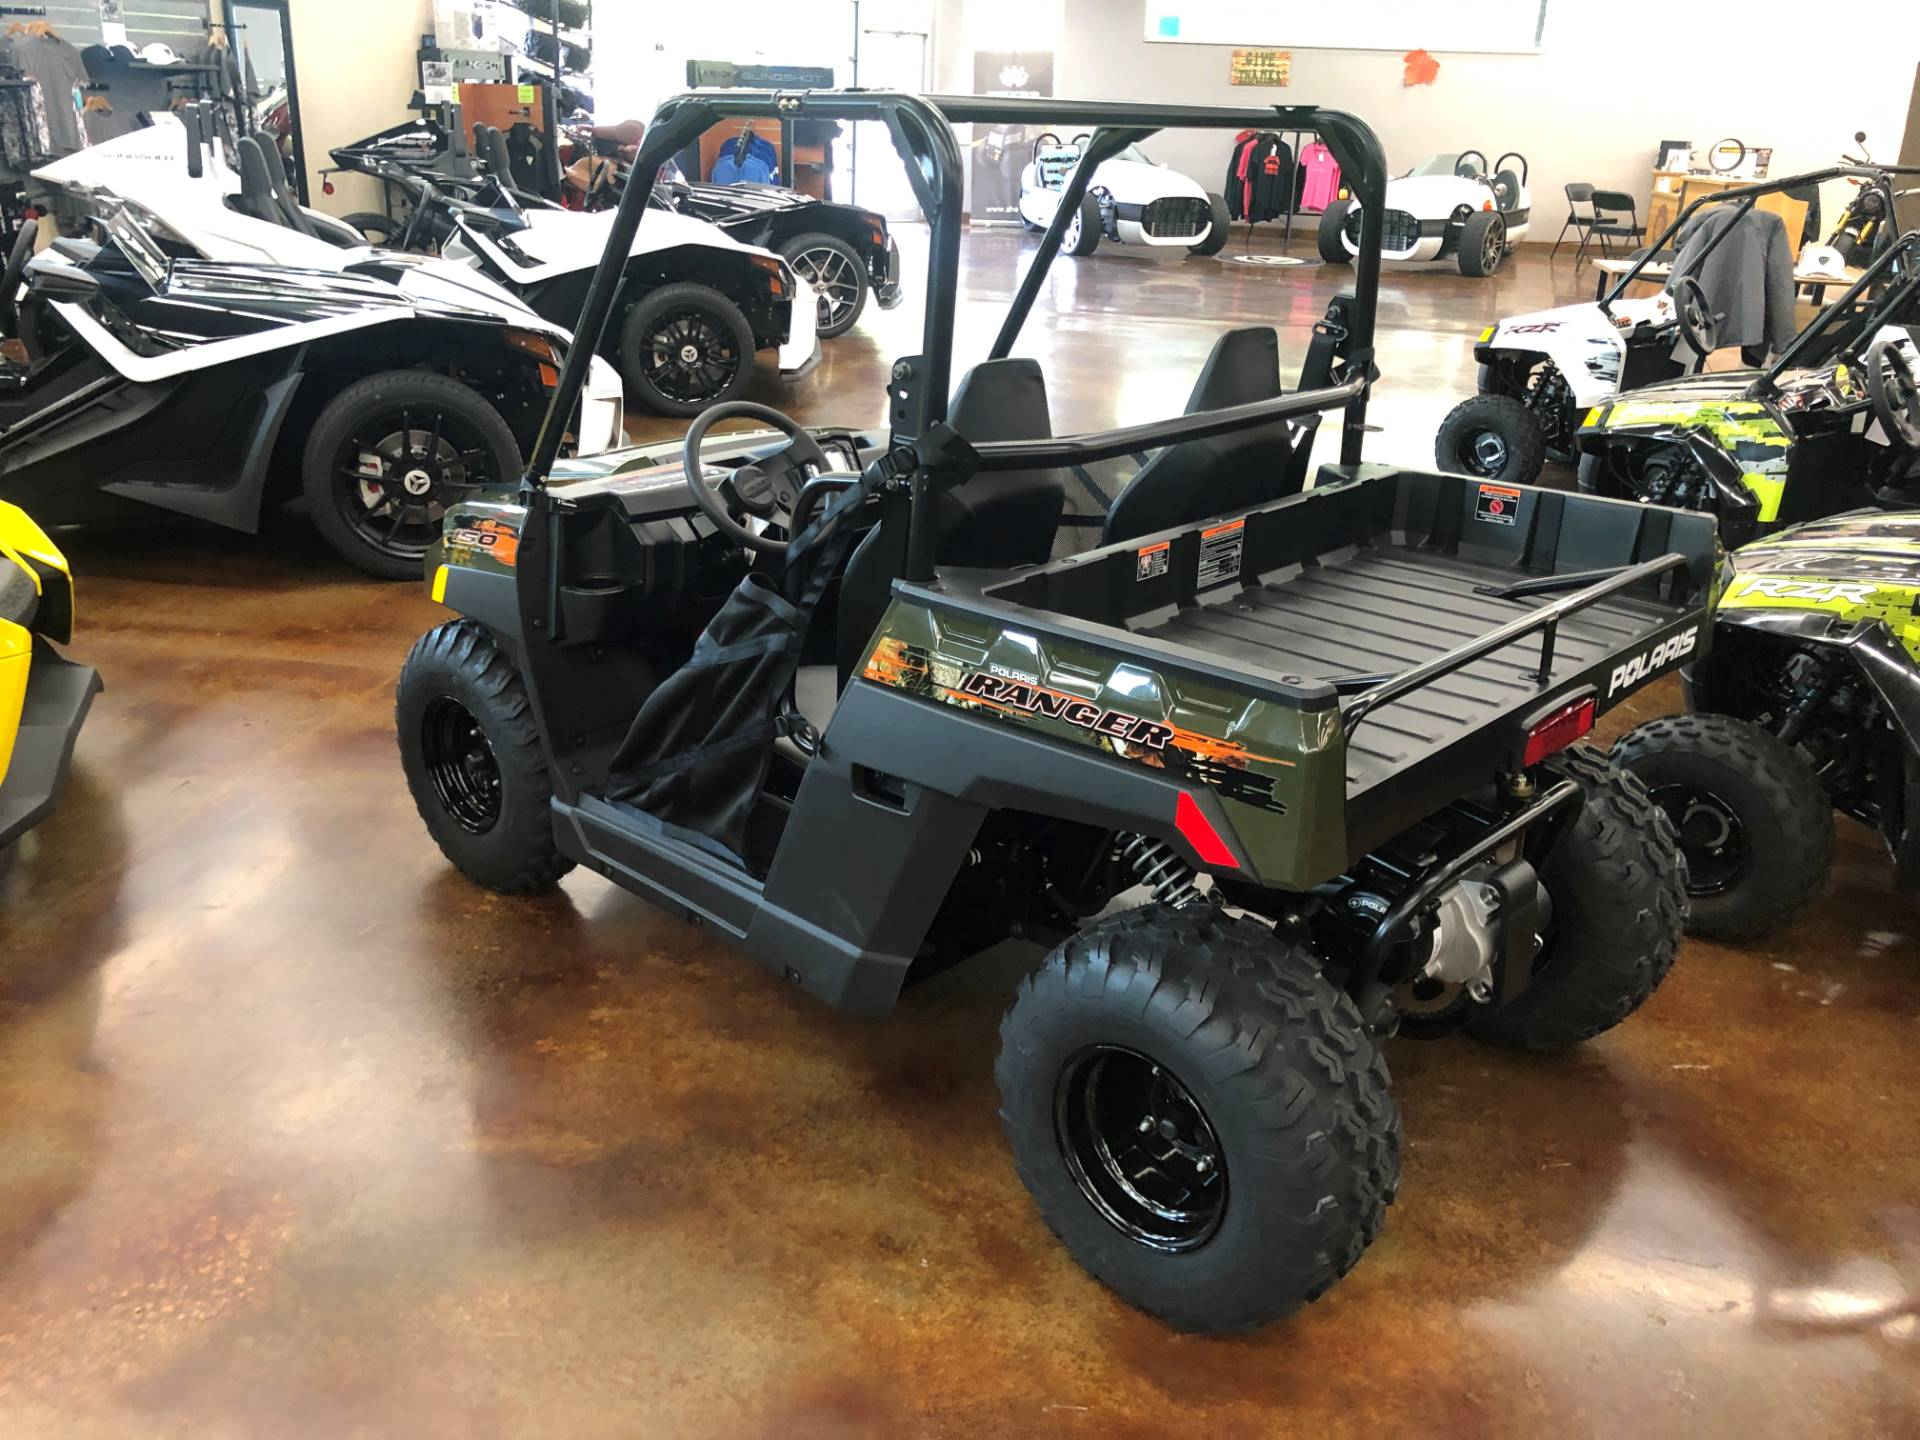 2020 Polaris Ranger 150 EFI in Fleming Island, Florida - Photo 4